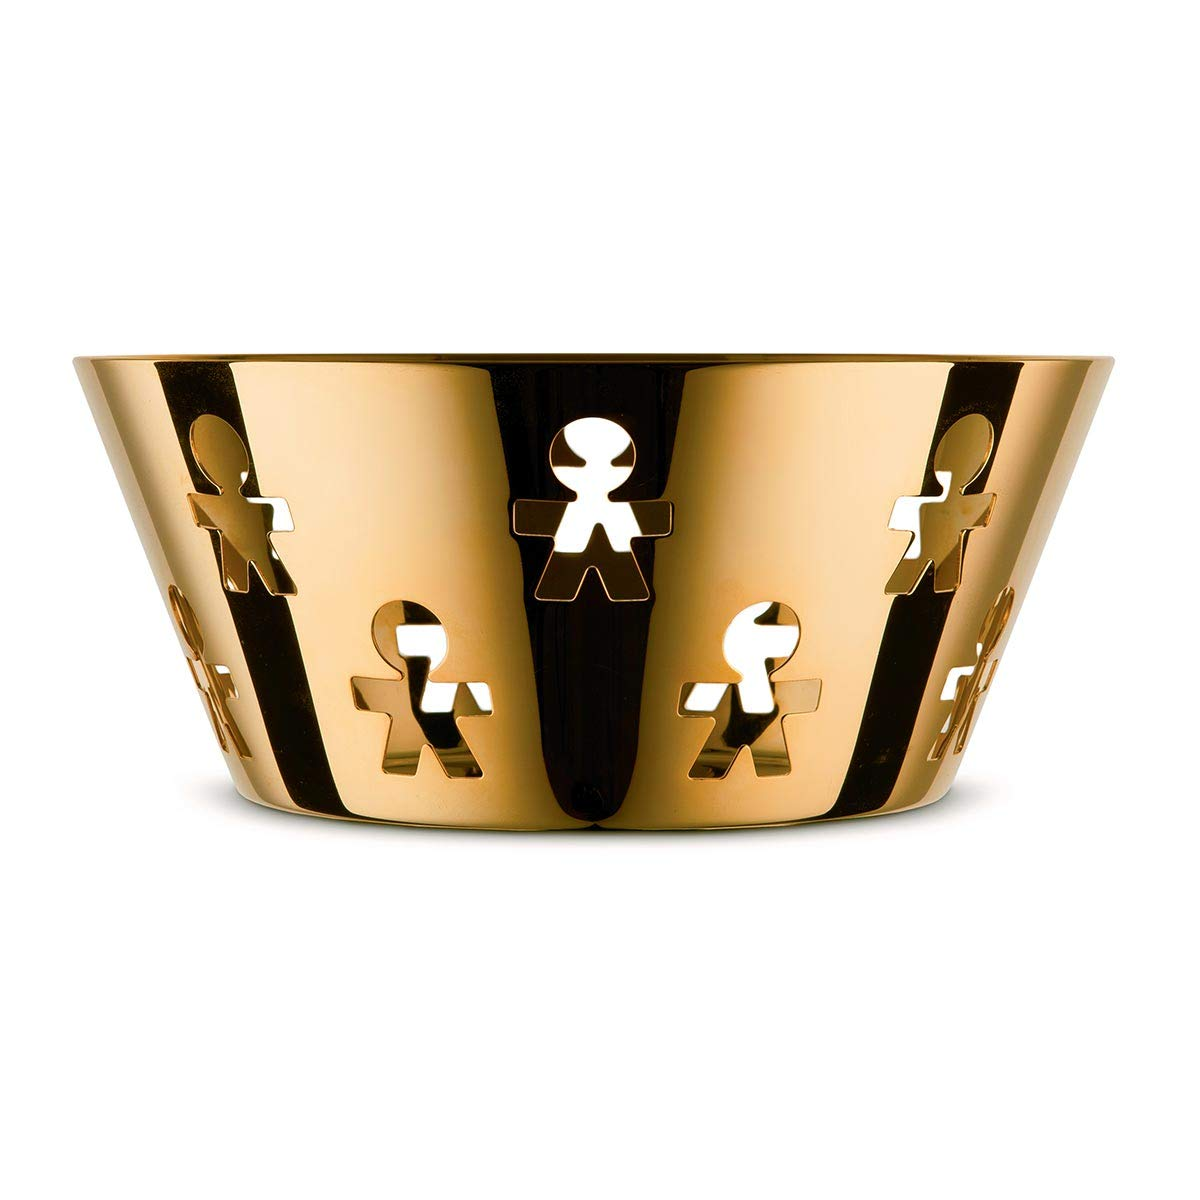 Alessi Girotondo Medium Bowl in Stainless Steel 24 Carat Gold Plated